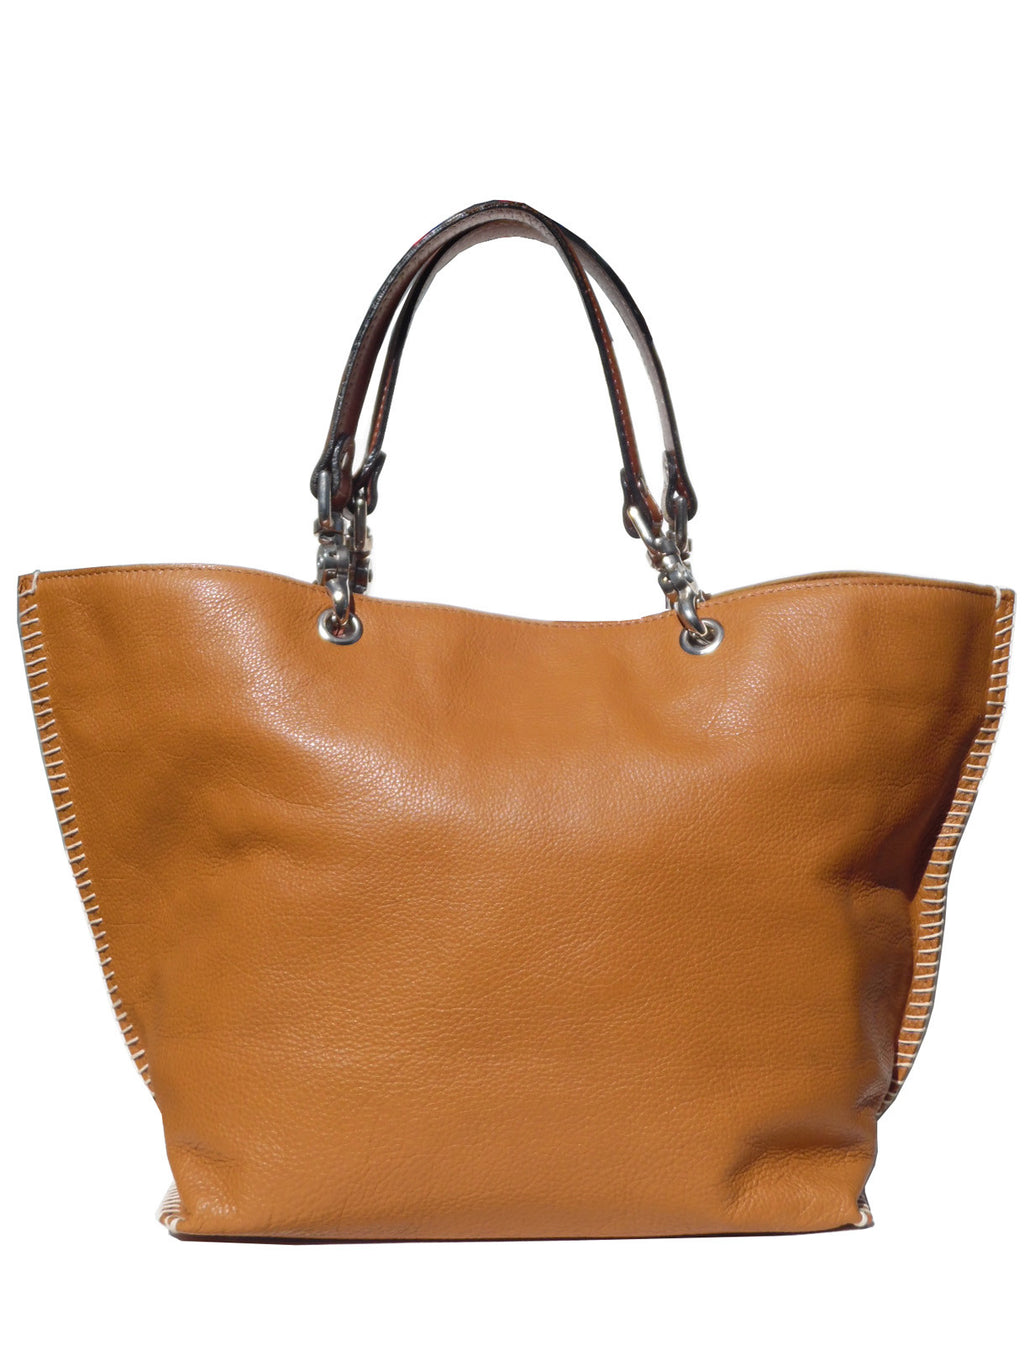 Gamidi 2 Tote Napa Leather Whiskey